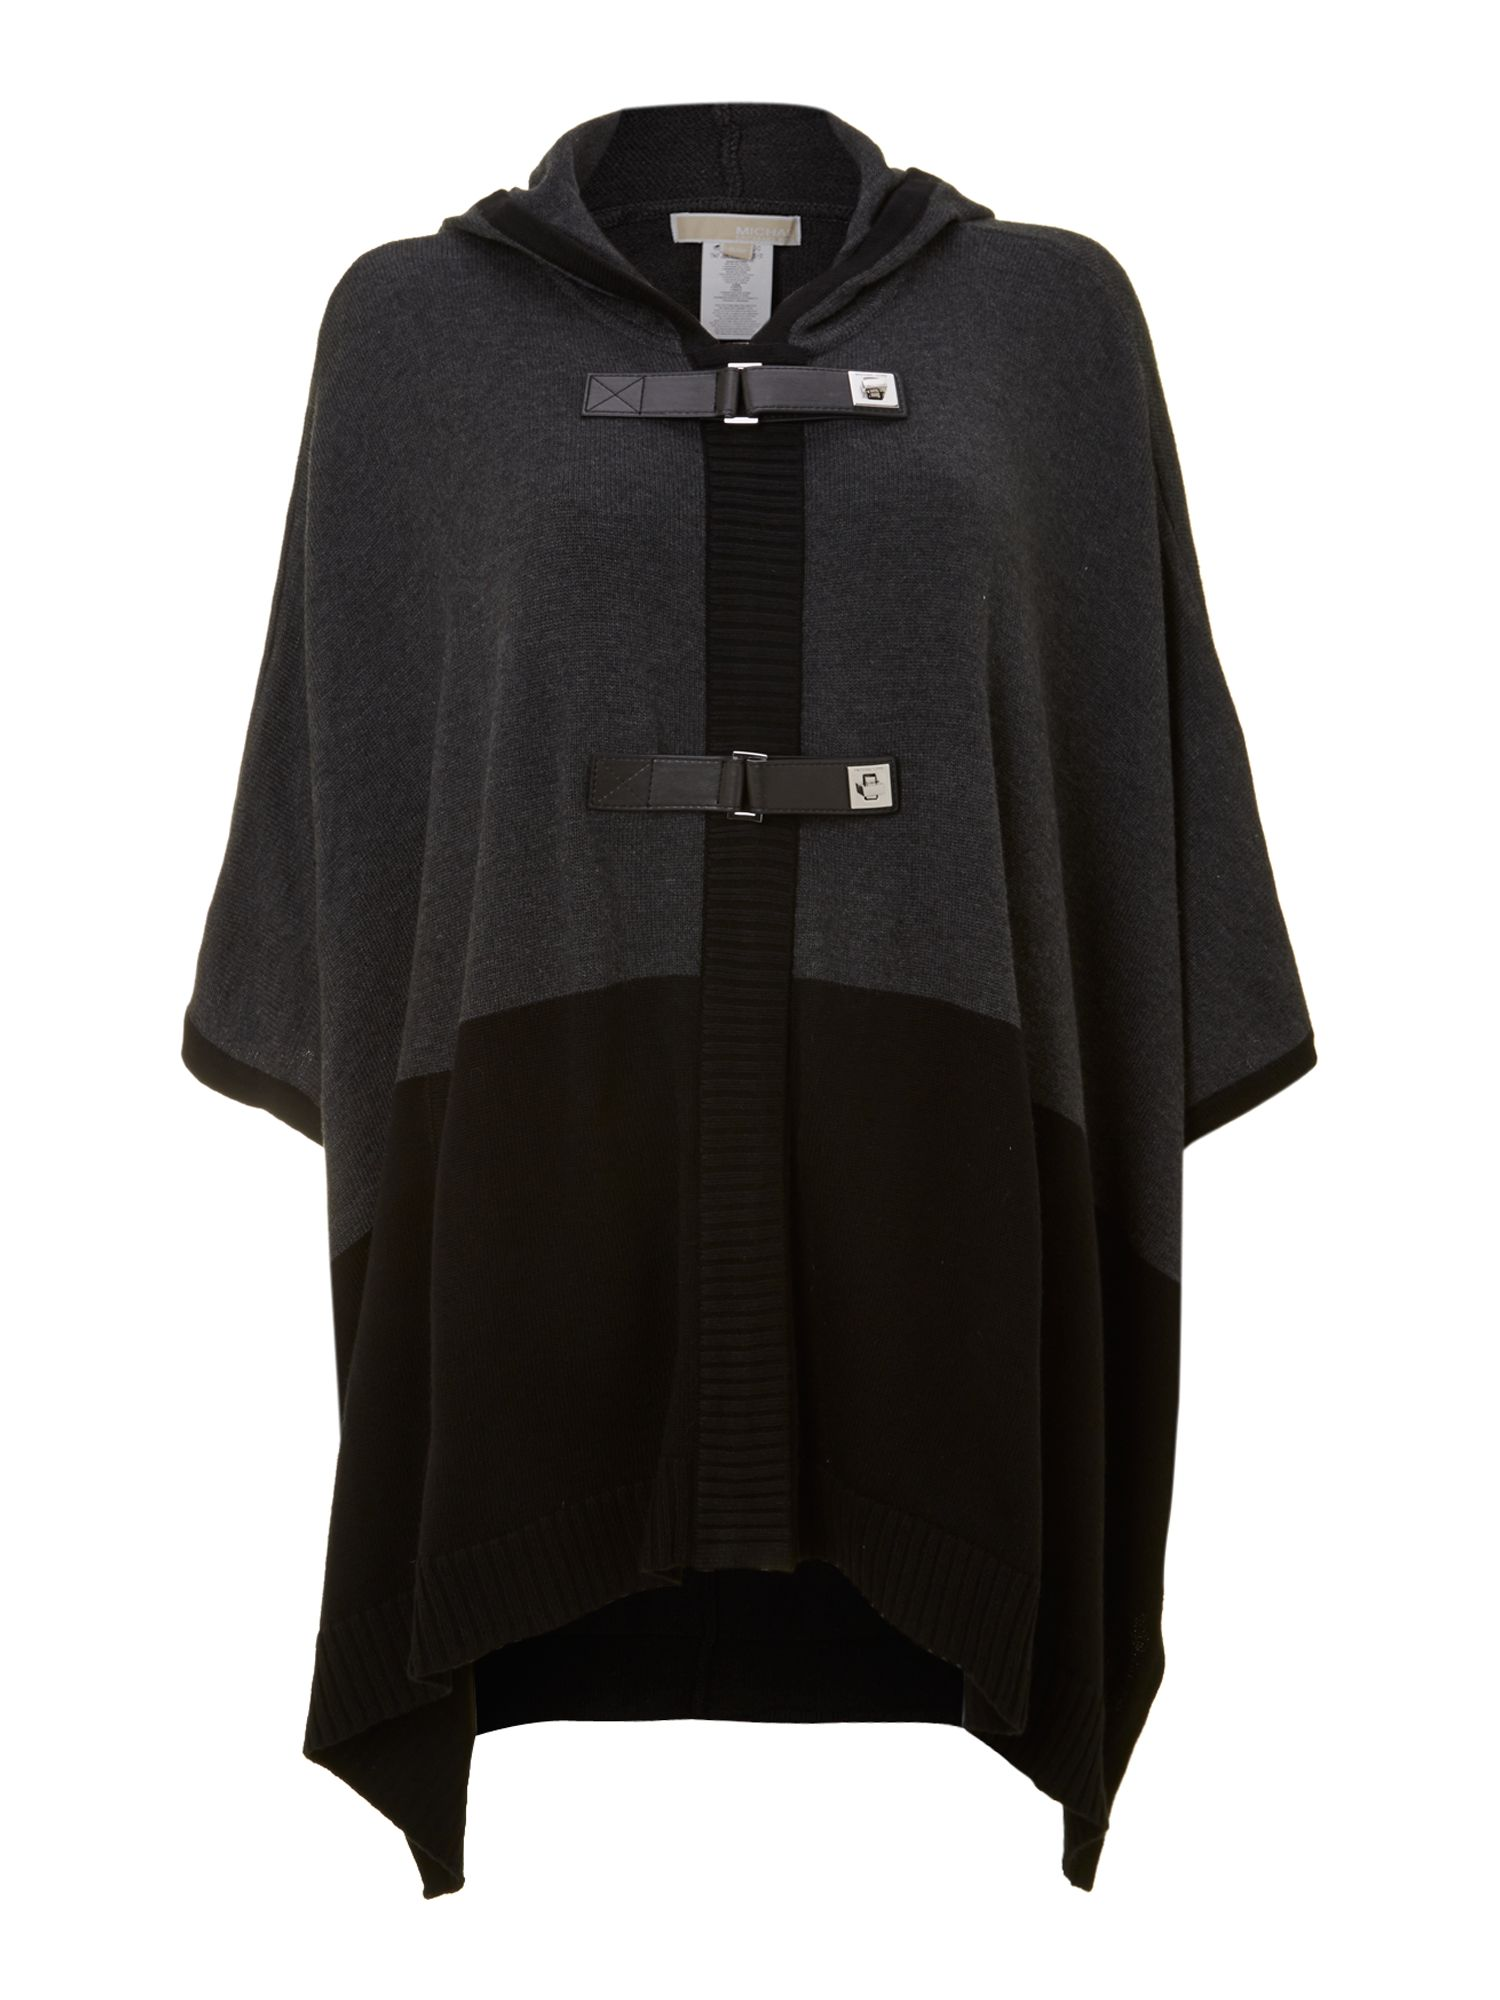 Poncho with hood and buckle detail